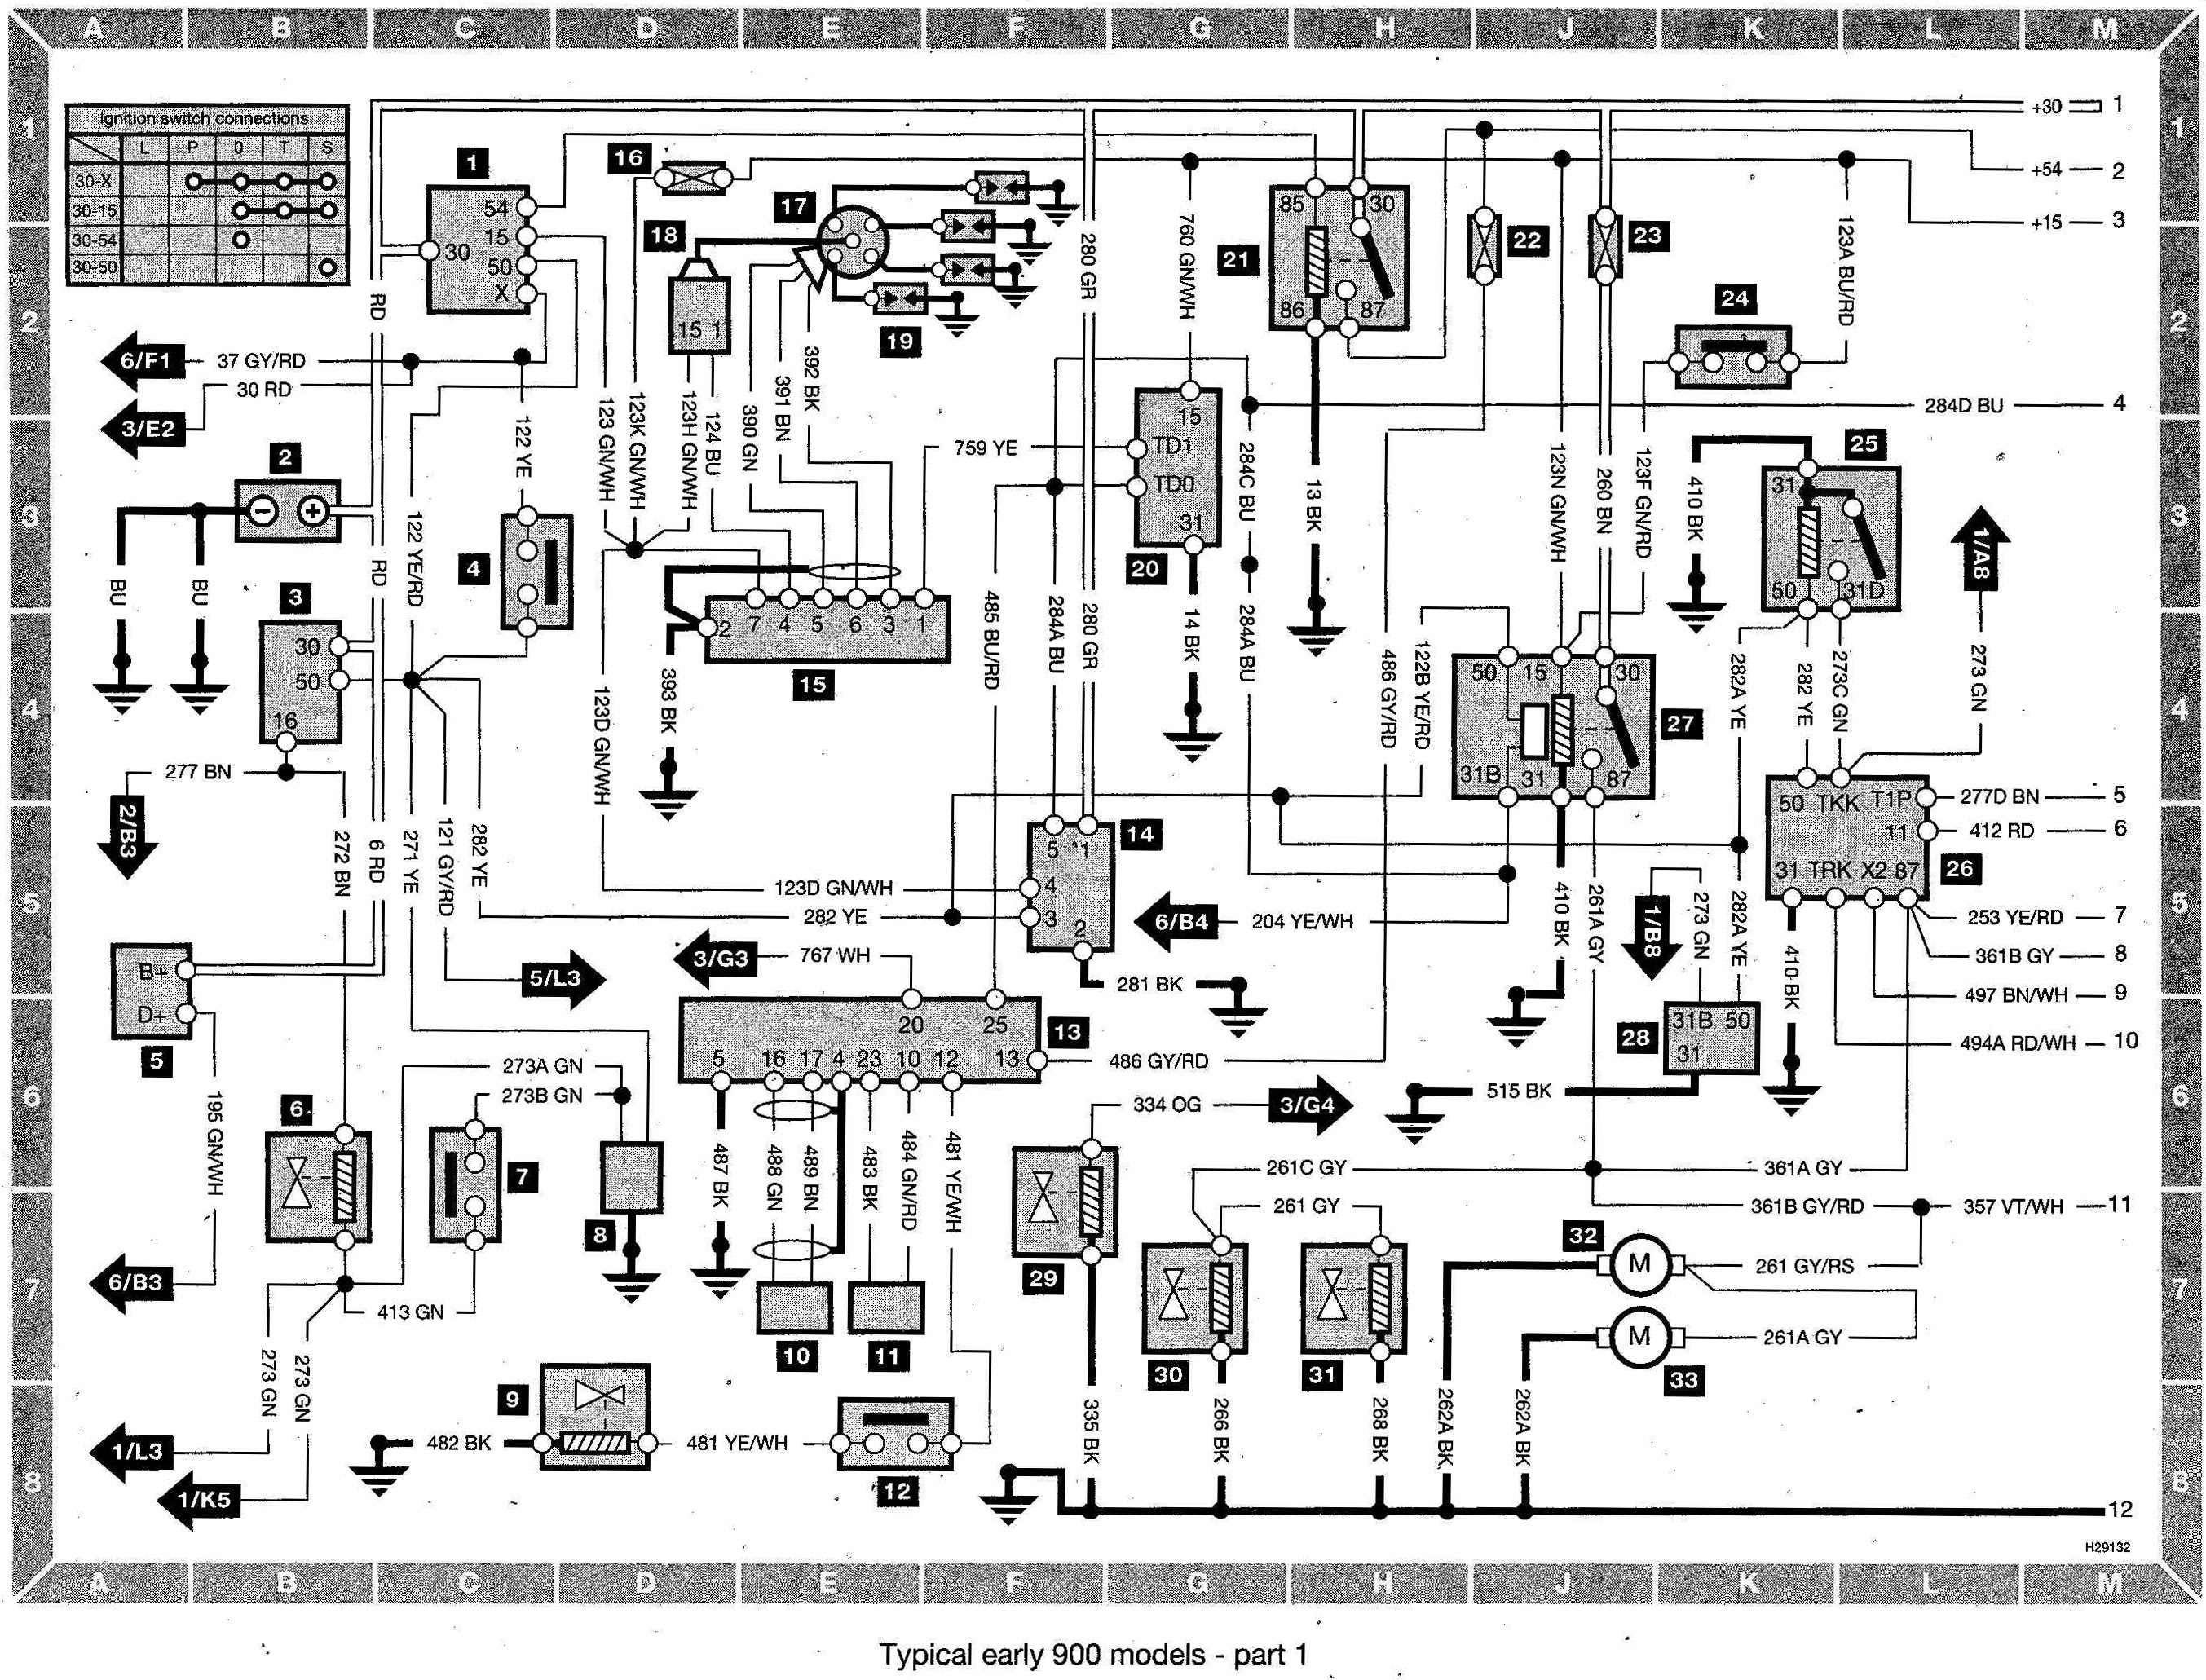 Wiring Diagram PDF: 2003 Chevy Trailblazer Radio Wiring